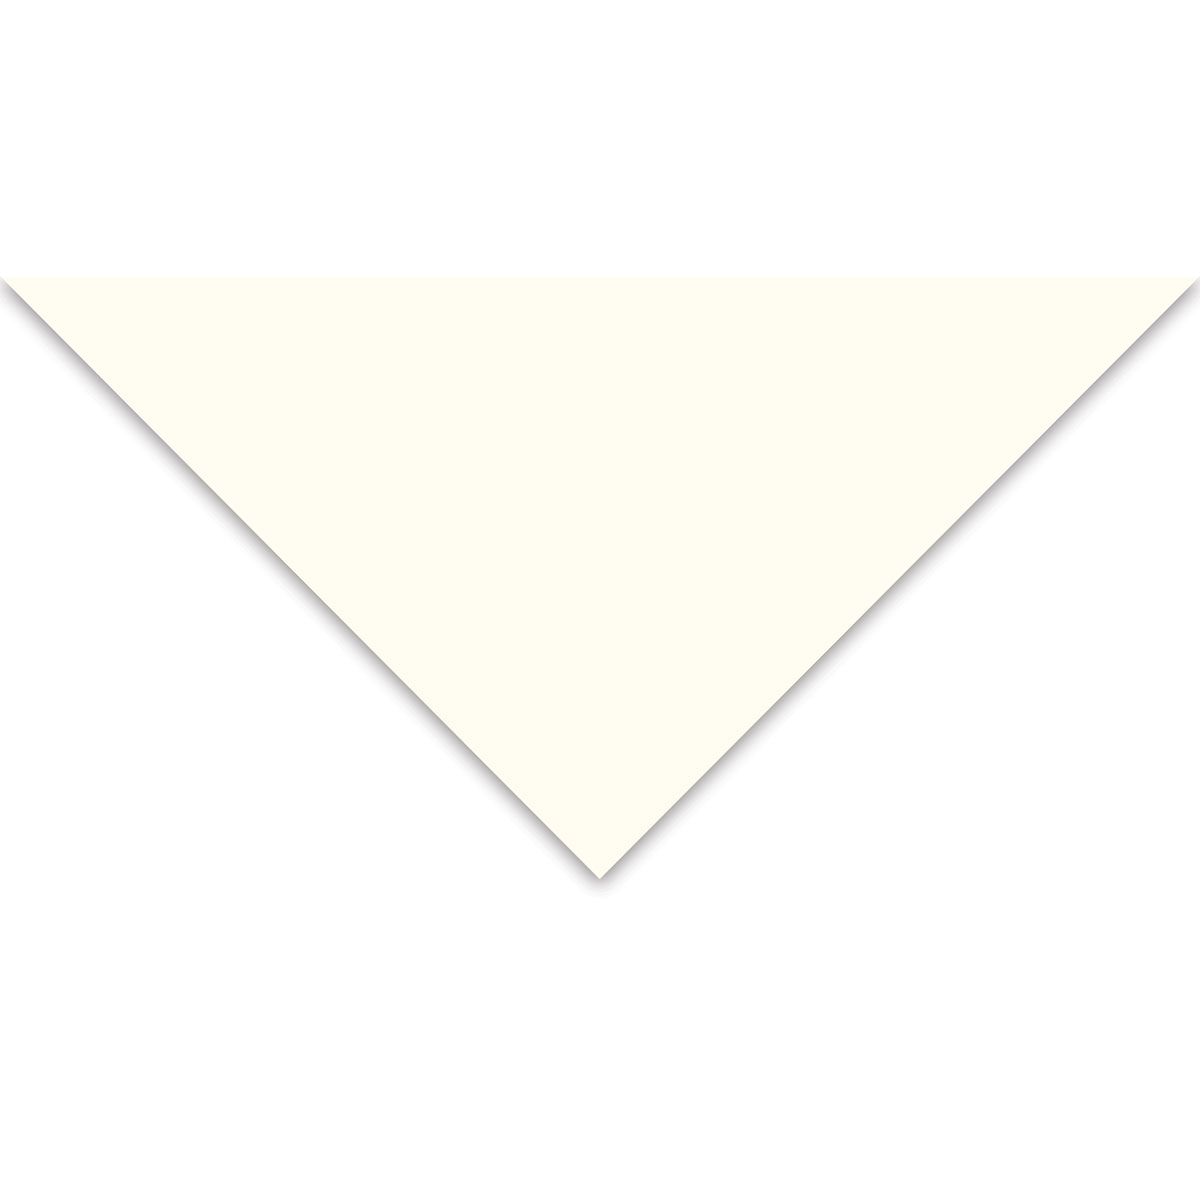 Strathmore Museum Mounting Board - 32 x 40 x 4-ply, Natural